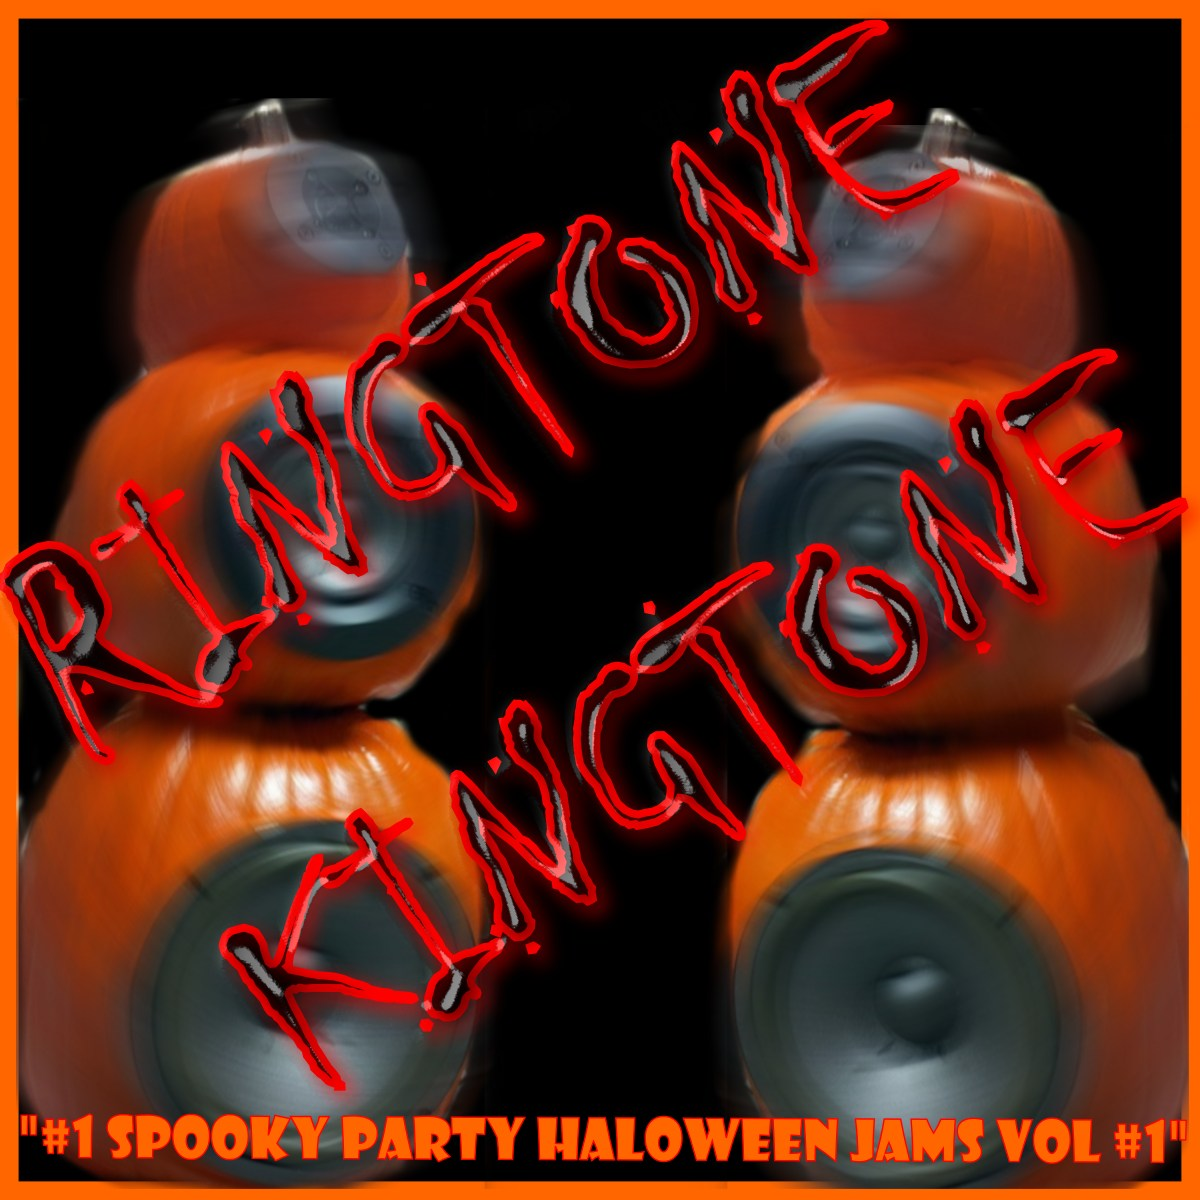 Cover art for #1 SPOOKY PARTY HALLOWEEN JAMS VOL #1